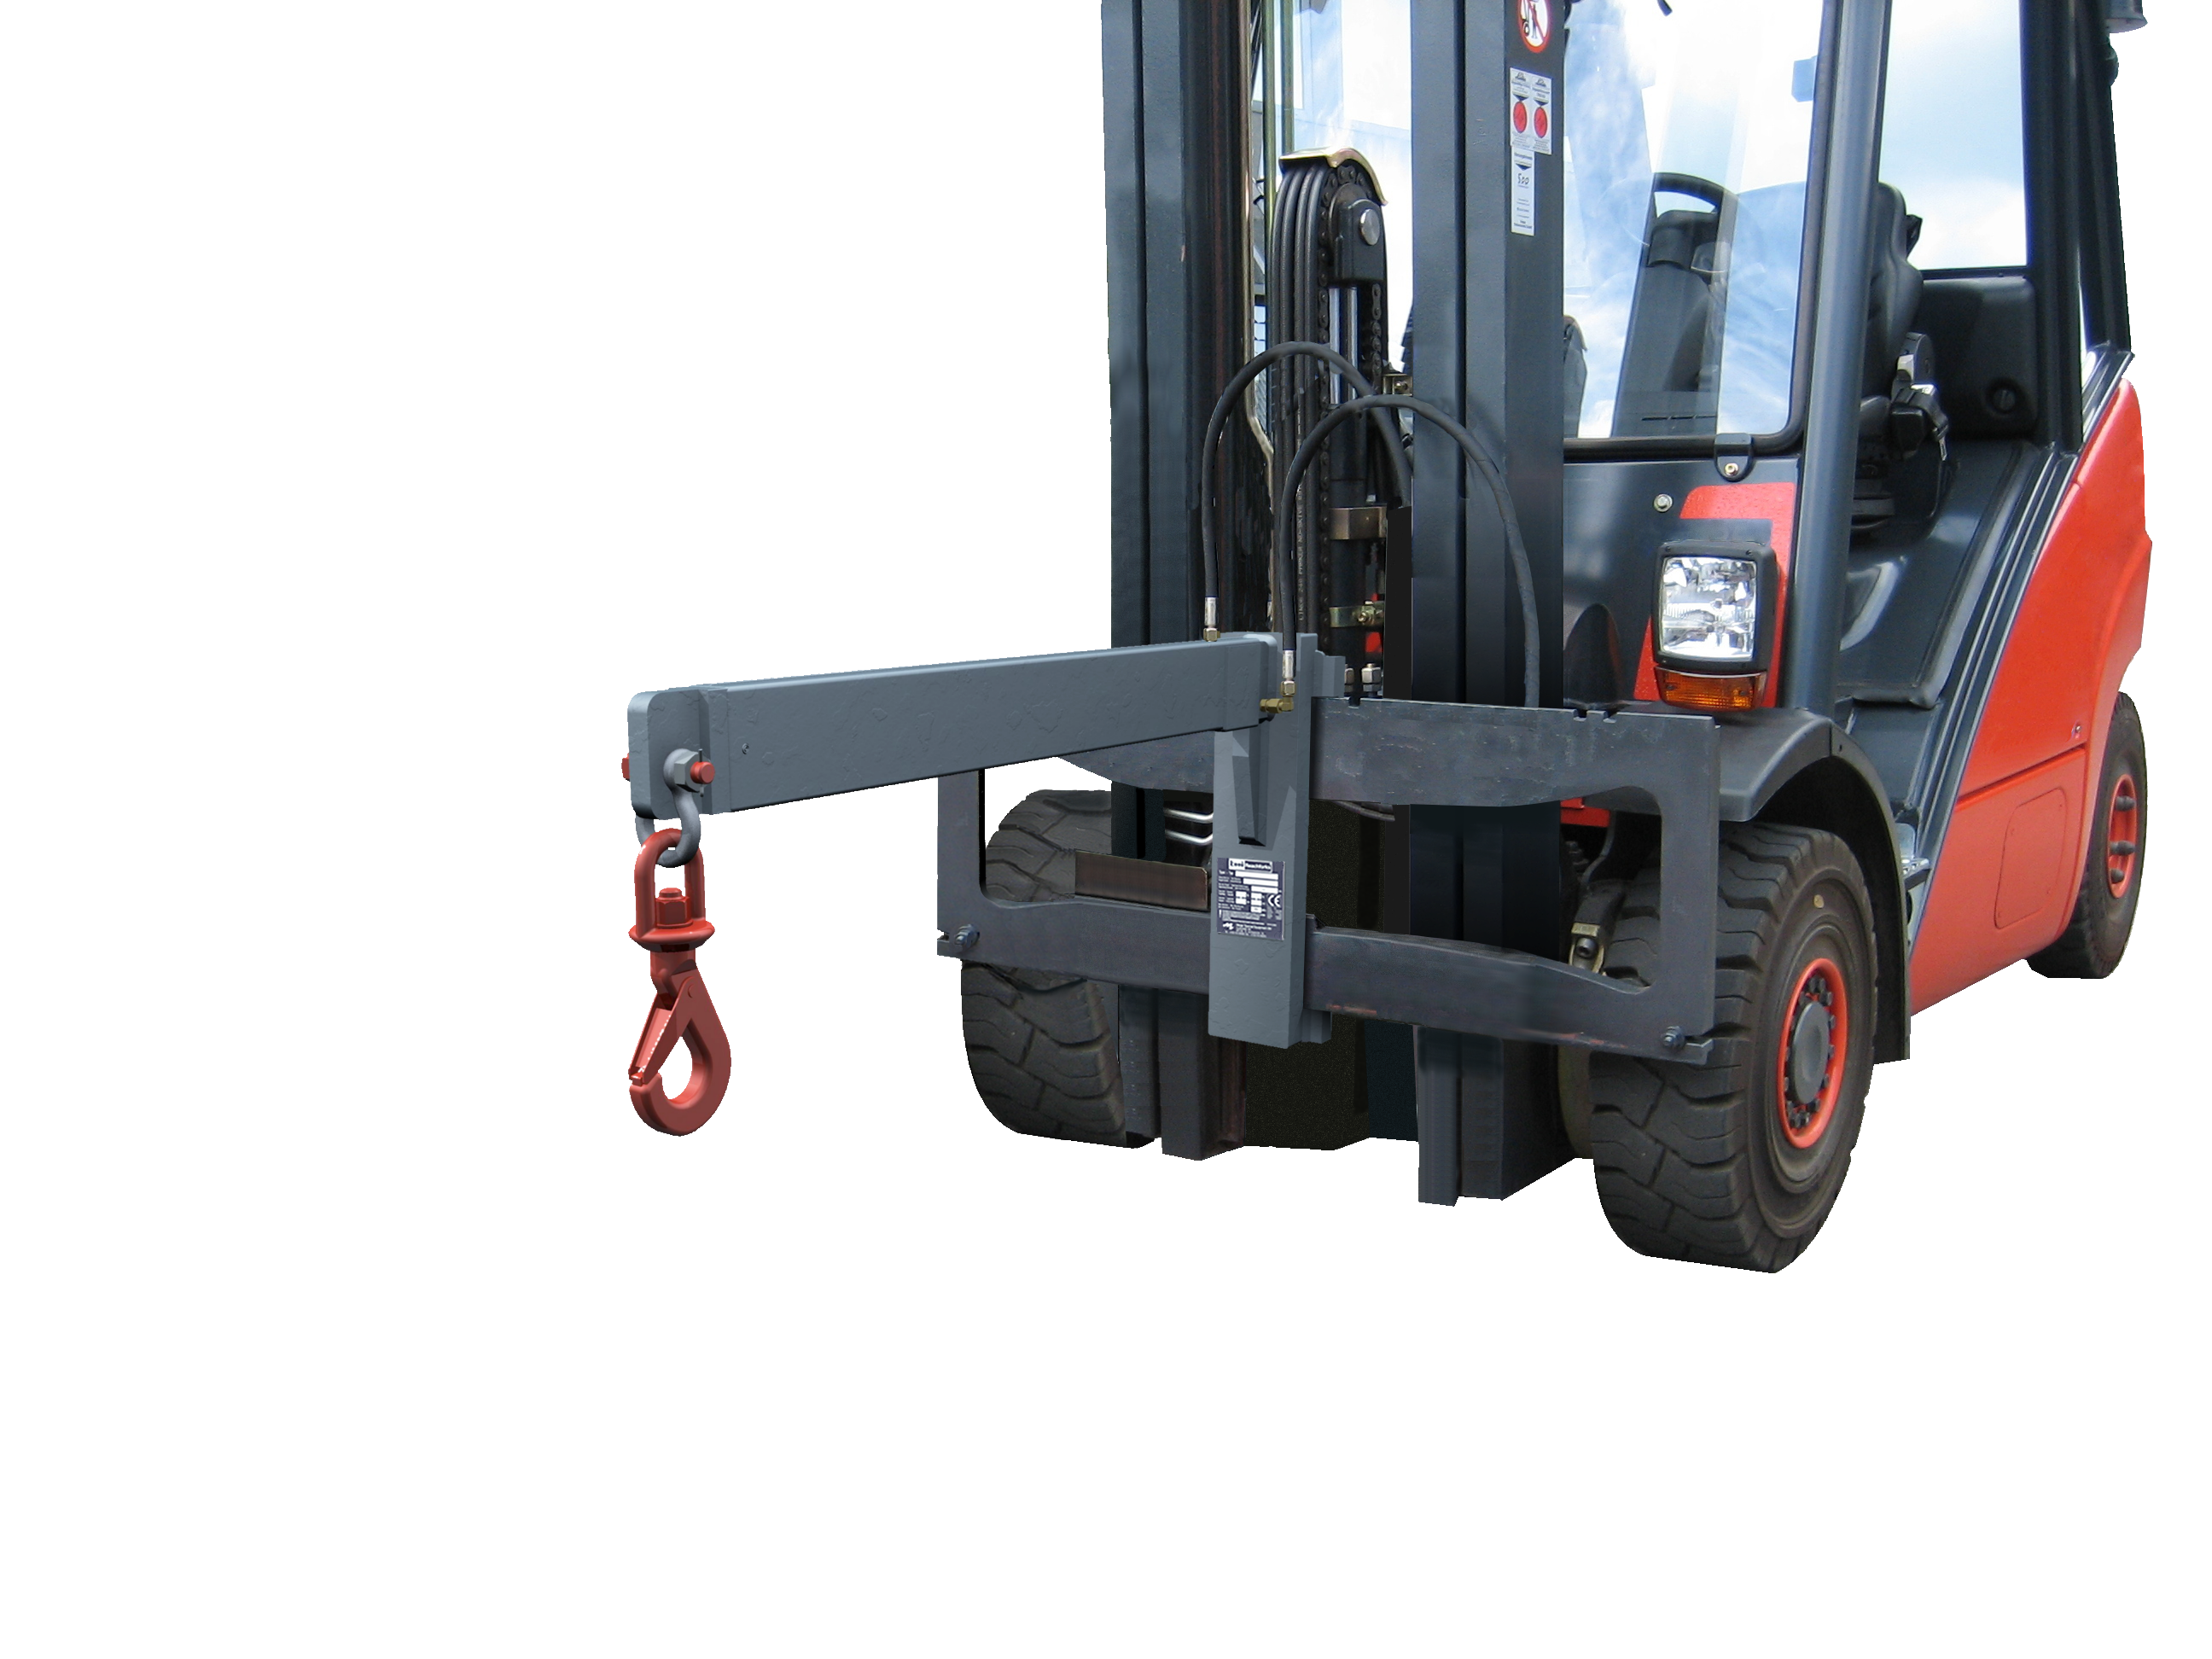 Lifttruck with crane